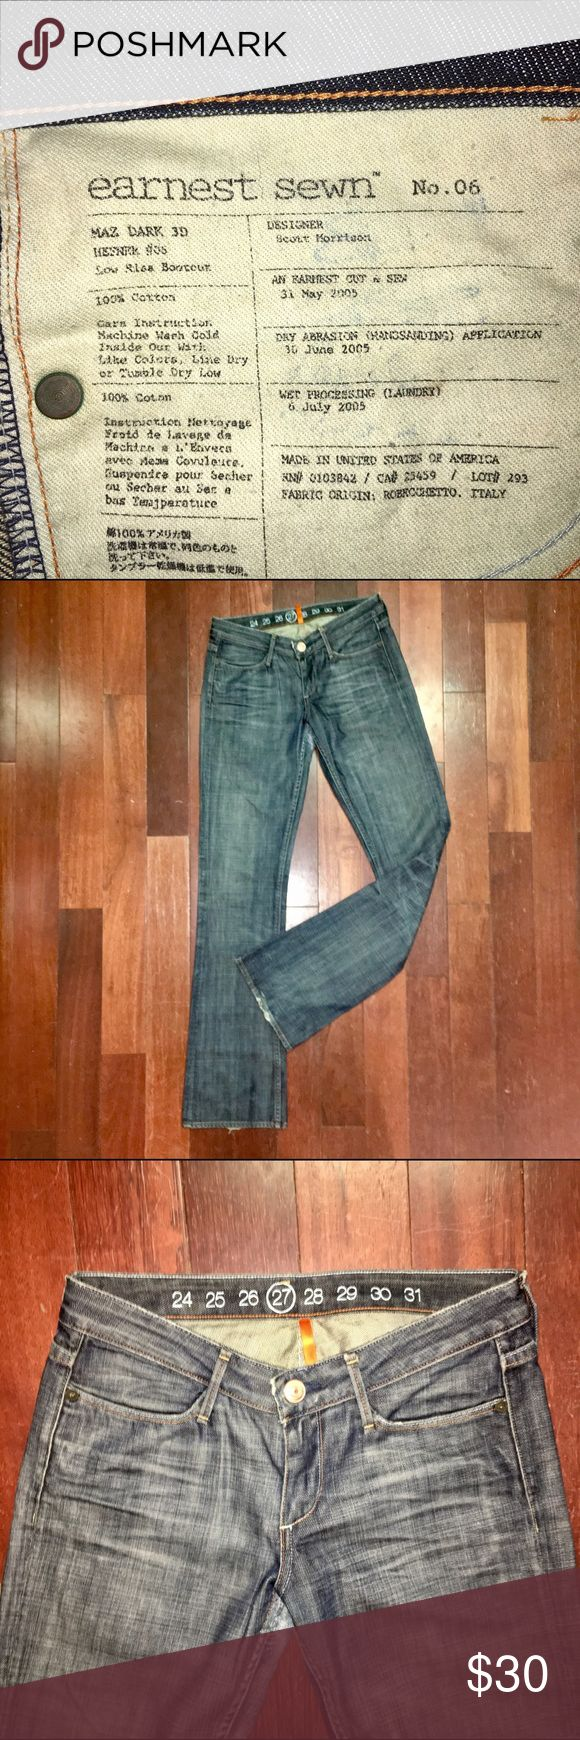 """EARNEST SEWN MAZ DARK 3D WOMENS DISTRESSED JEANS EARNEST SEWN MAZ DARK 3D WOMENS DISTRESSED JEANS. SIZE IS 27 in Excellent Used Condition with only minor wear on the back ankle hem. No other flaws to note!   MEASUREMENTS: SIZE 27, WAIST 32"""", RISE 8"""". INSEAM 35"""" LEG OPENING 8.75"""" ACROSS. 98% COTTON 2% ELASTANE. MADE IN THE U.S.A.  RETAIL PRICE IS $190. Earnest Sewn Jeans Boot Cut"""